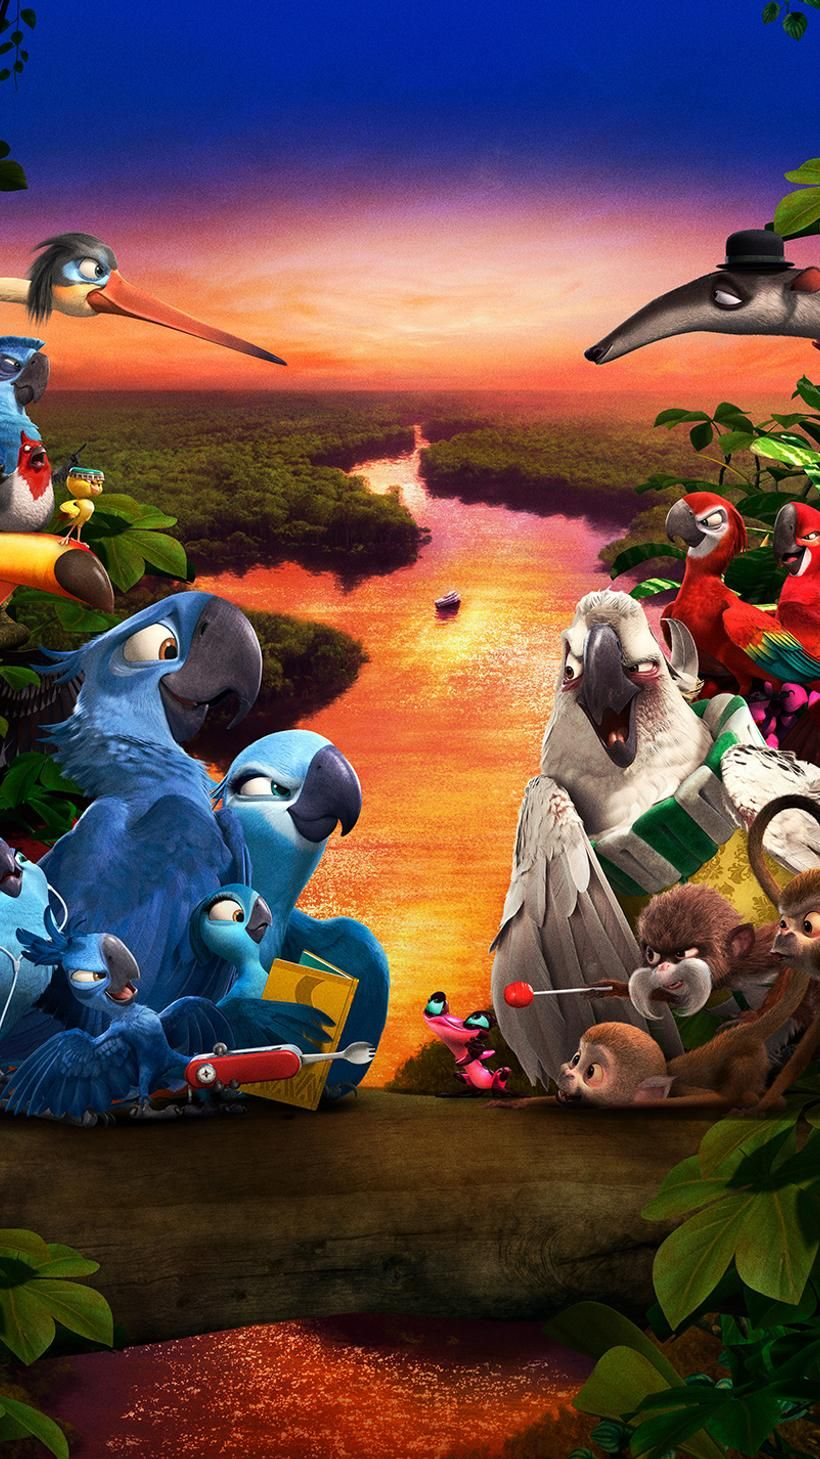 Smurfs The Lost Village 2017 Phone Wallpaper Moviemania In 2020 Cute Disney Wallpaper Disney Wallpaper Disney Phone Wallpaper